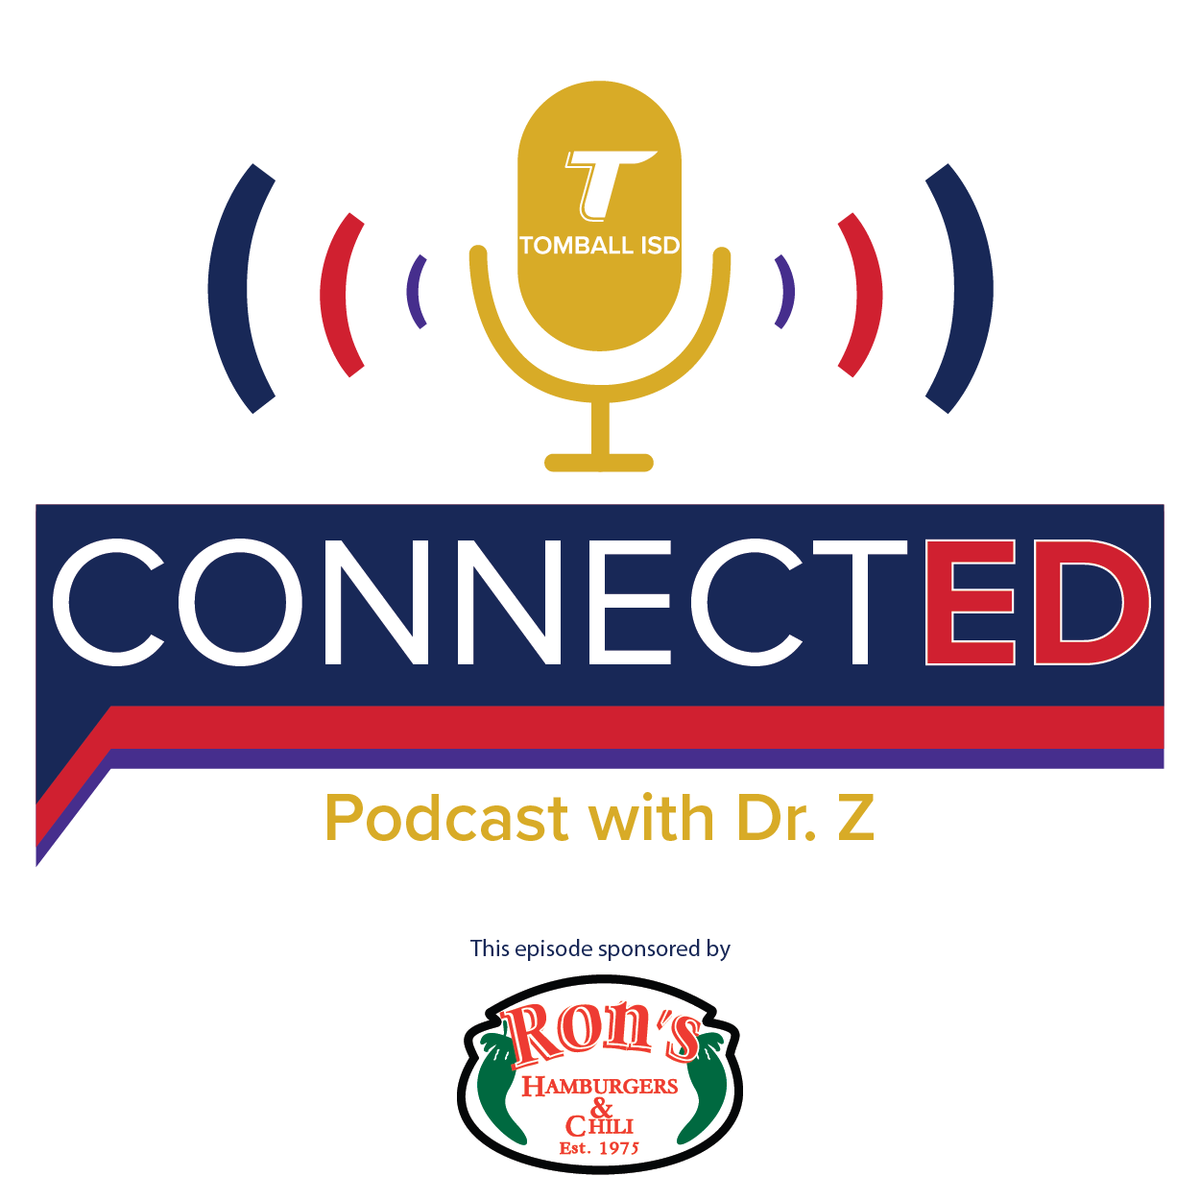 ConnectED with Dr. Z sponsored by Ron's Burgers and Chili